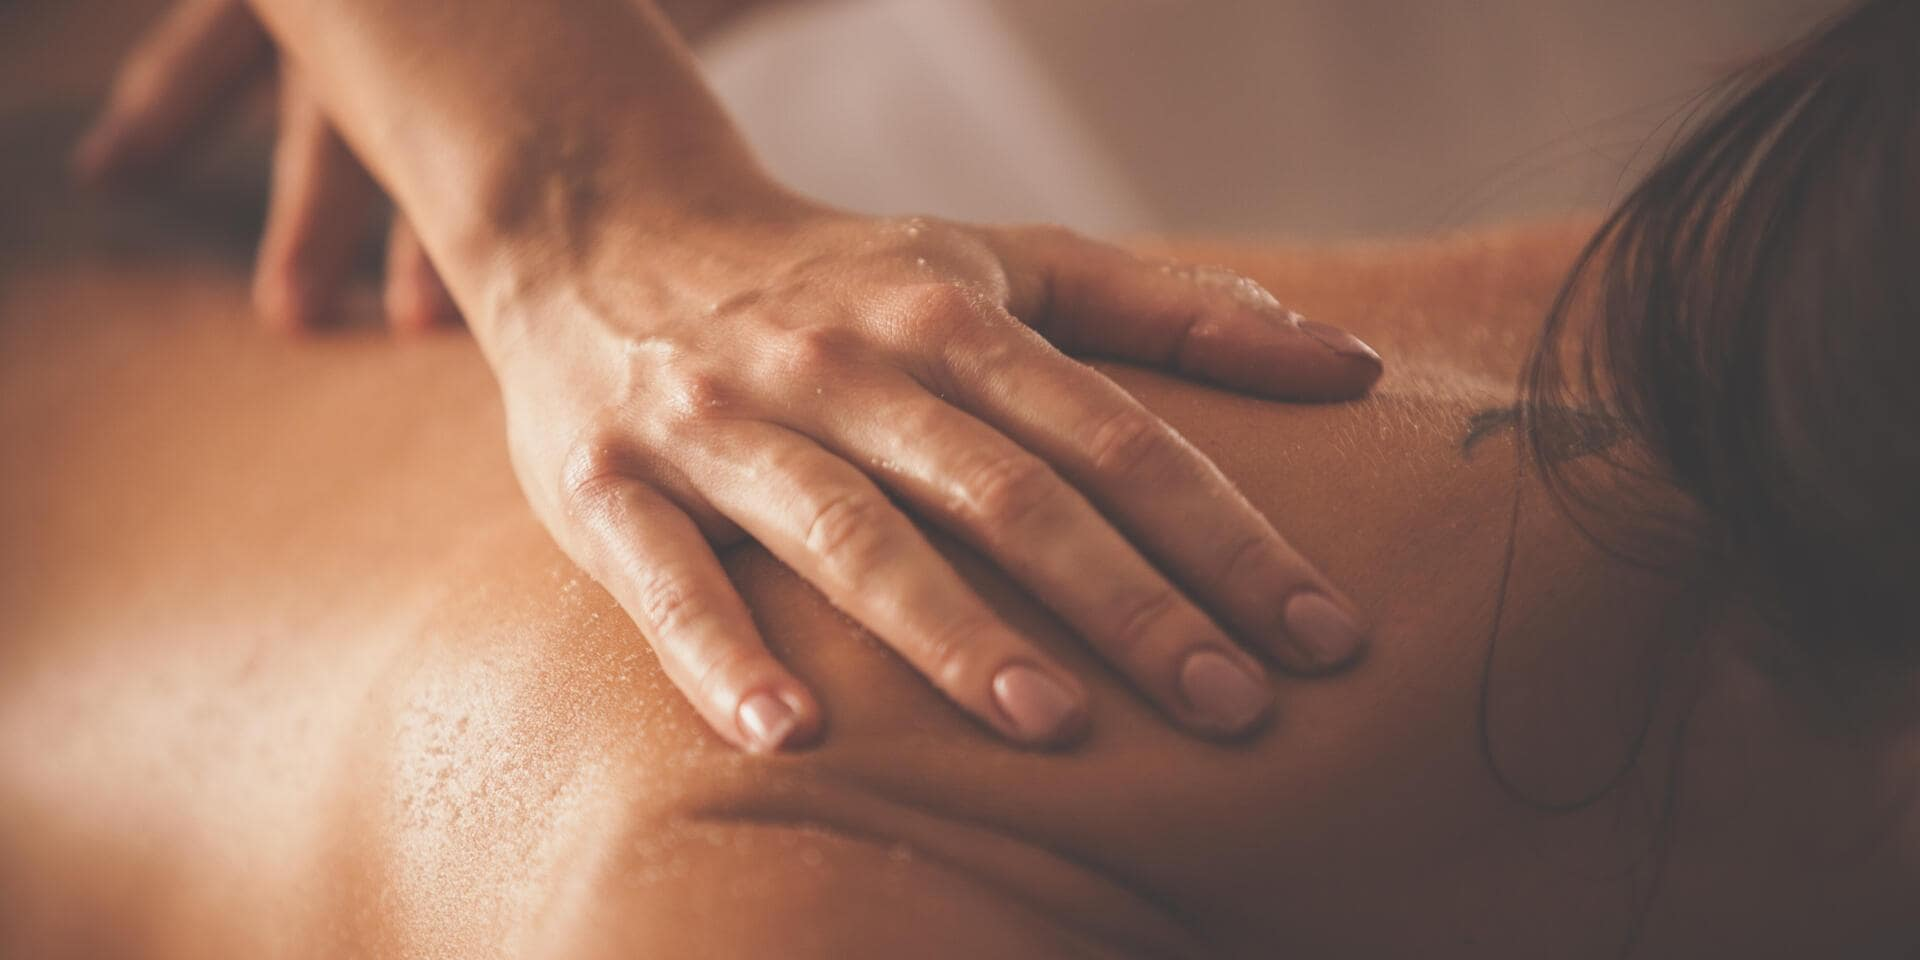 Close-up shot of beautician rubbing body scrub on woman's back and shoulders.